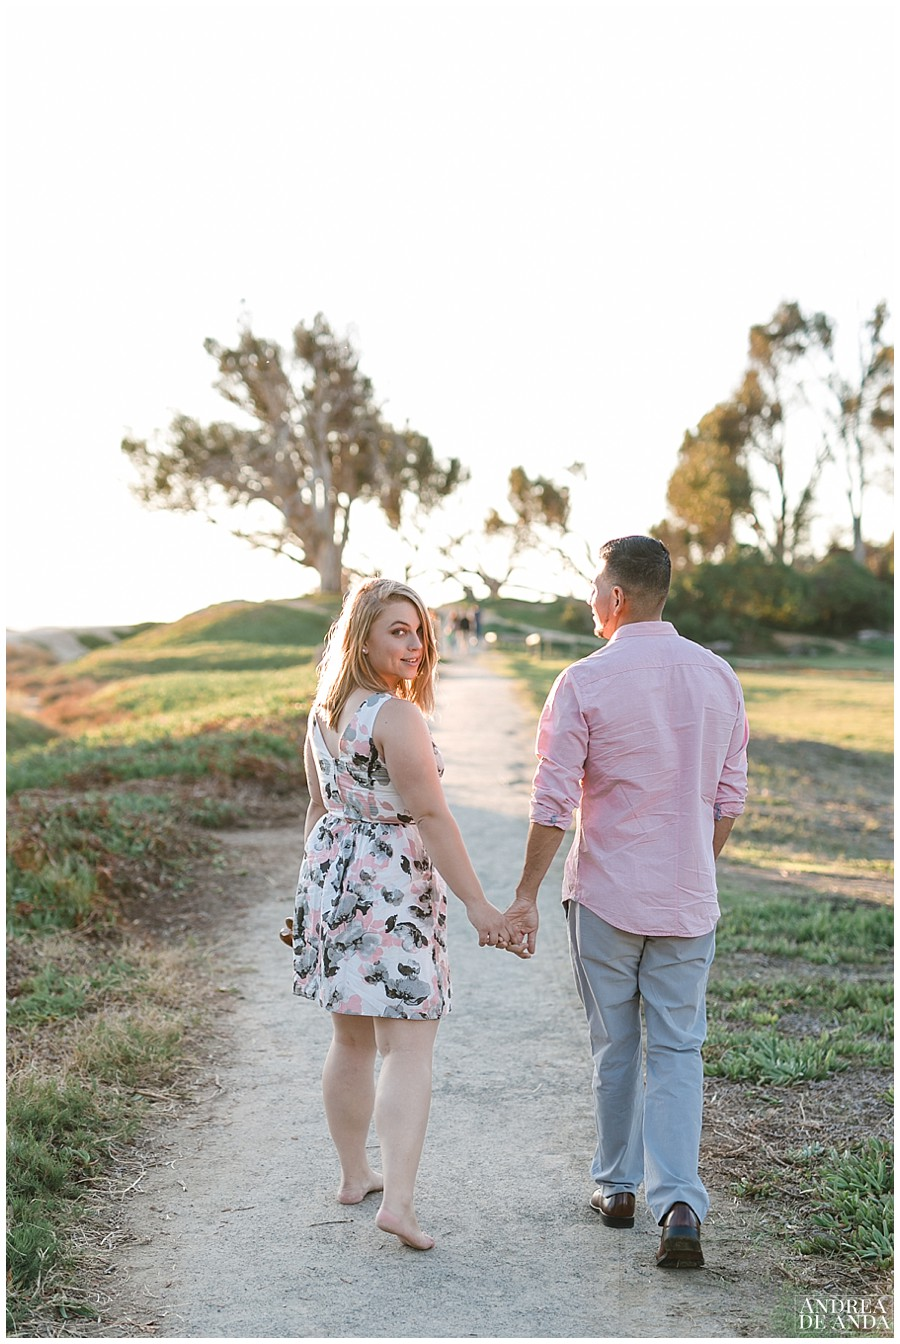 Grover Beach Engagement Session_ Andrea de Anda Photography__0005.jpg